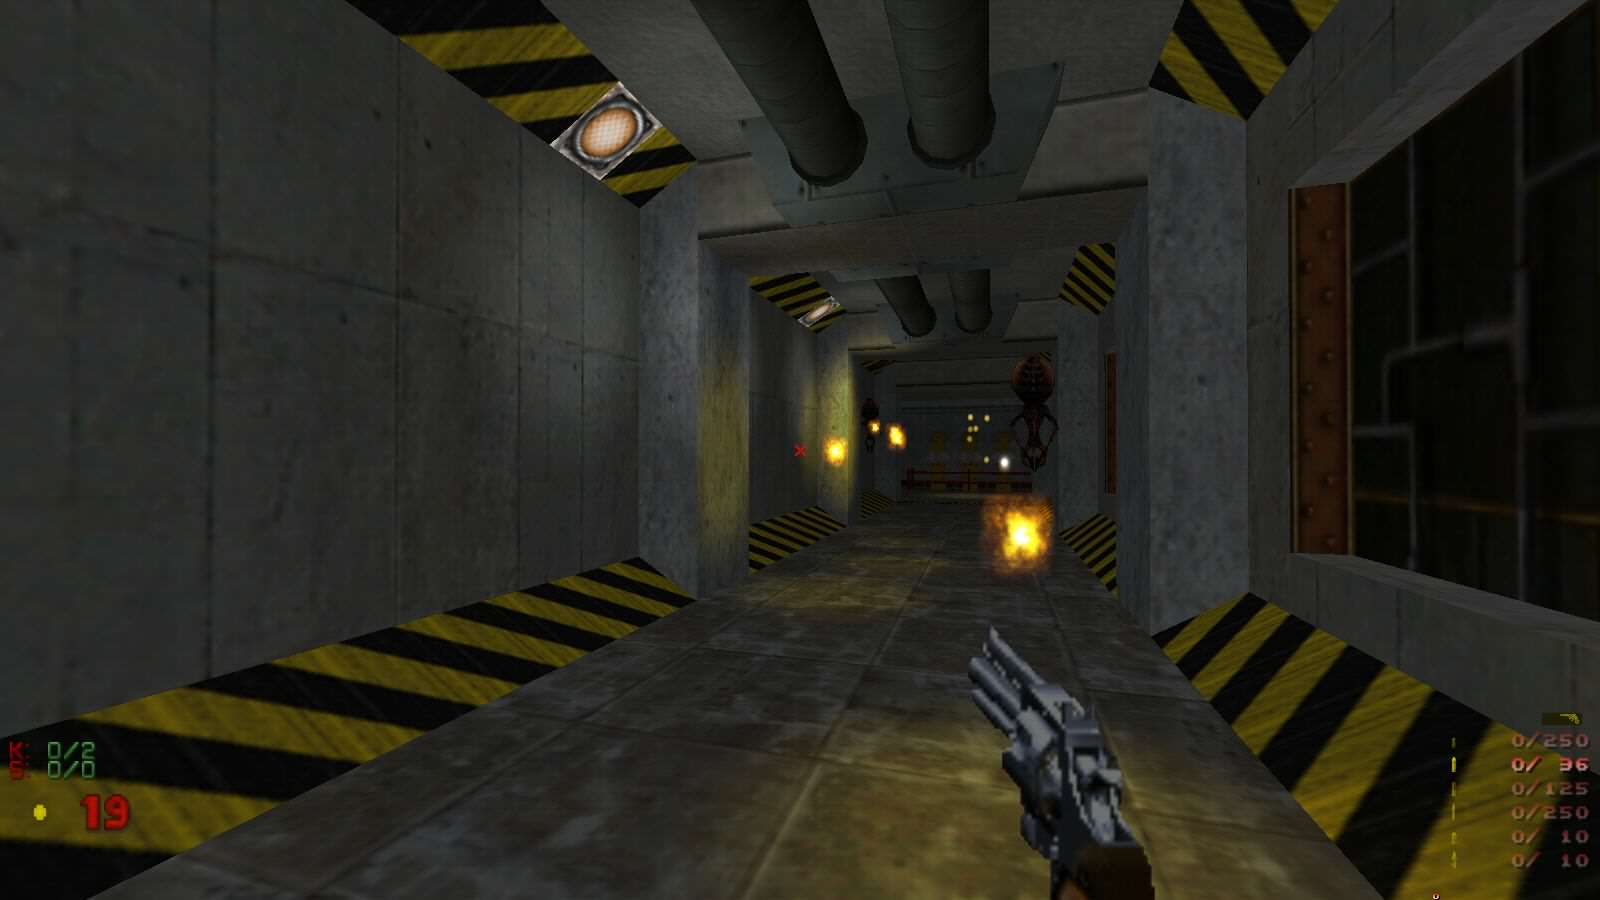 PnoicMap16 02 Half Life Recreated In DOOM Is Pretty Awesome